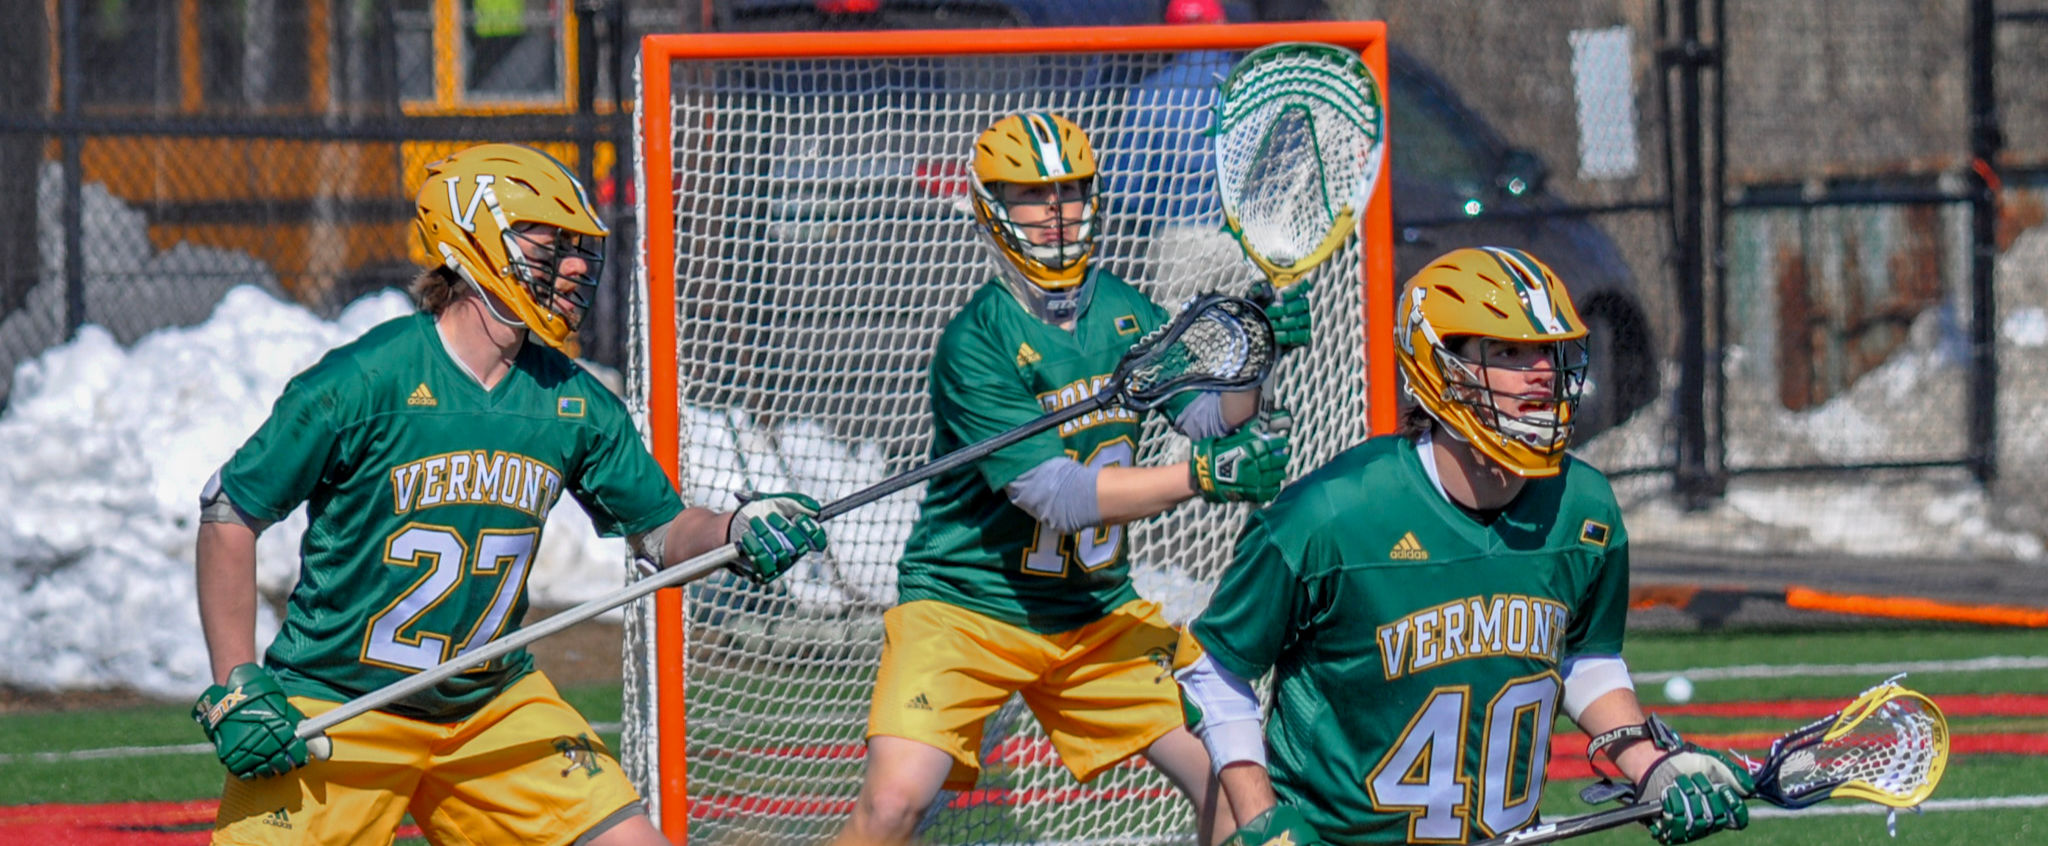 University of Vermont Lacrosse's Nick Washuta from Orono, Minnesota